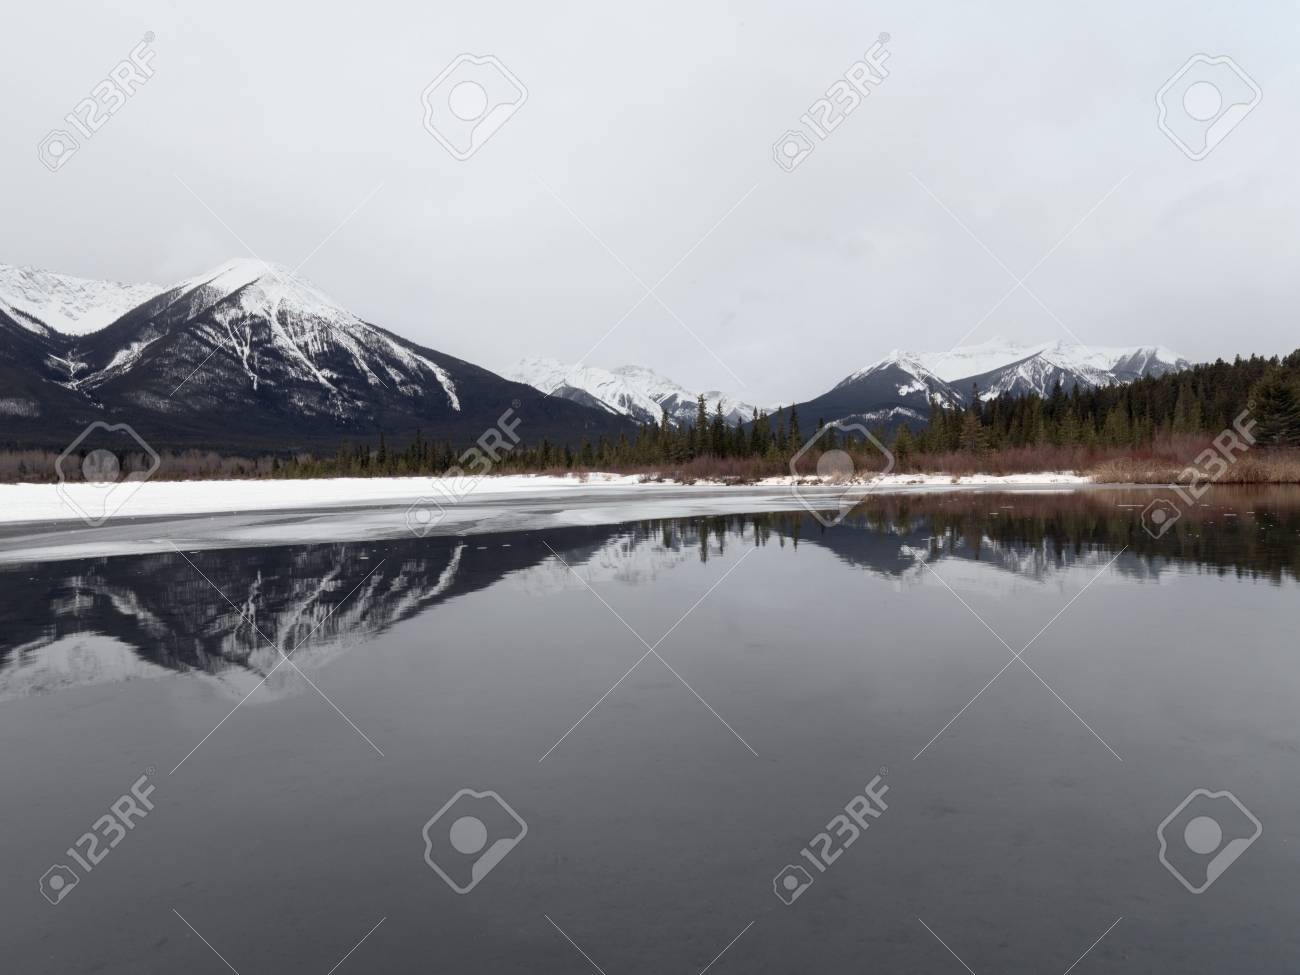 Winter landscape, Banff National Park, Alberta, Canada Stock Photo - 7193599